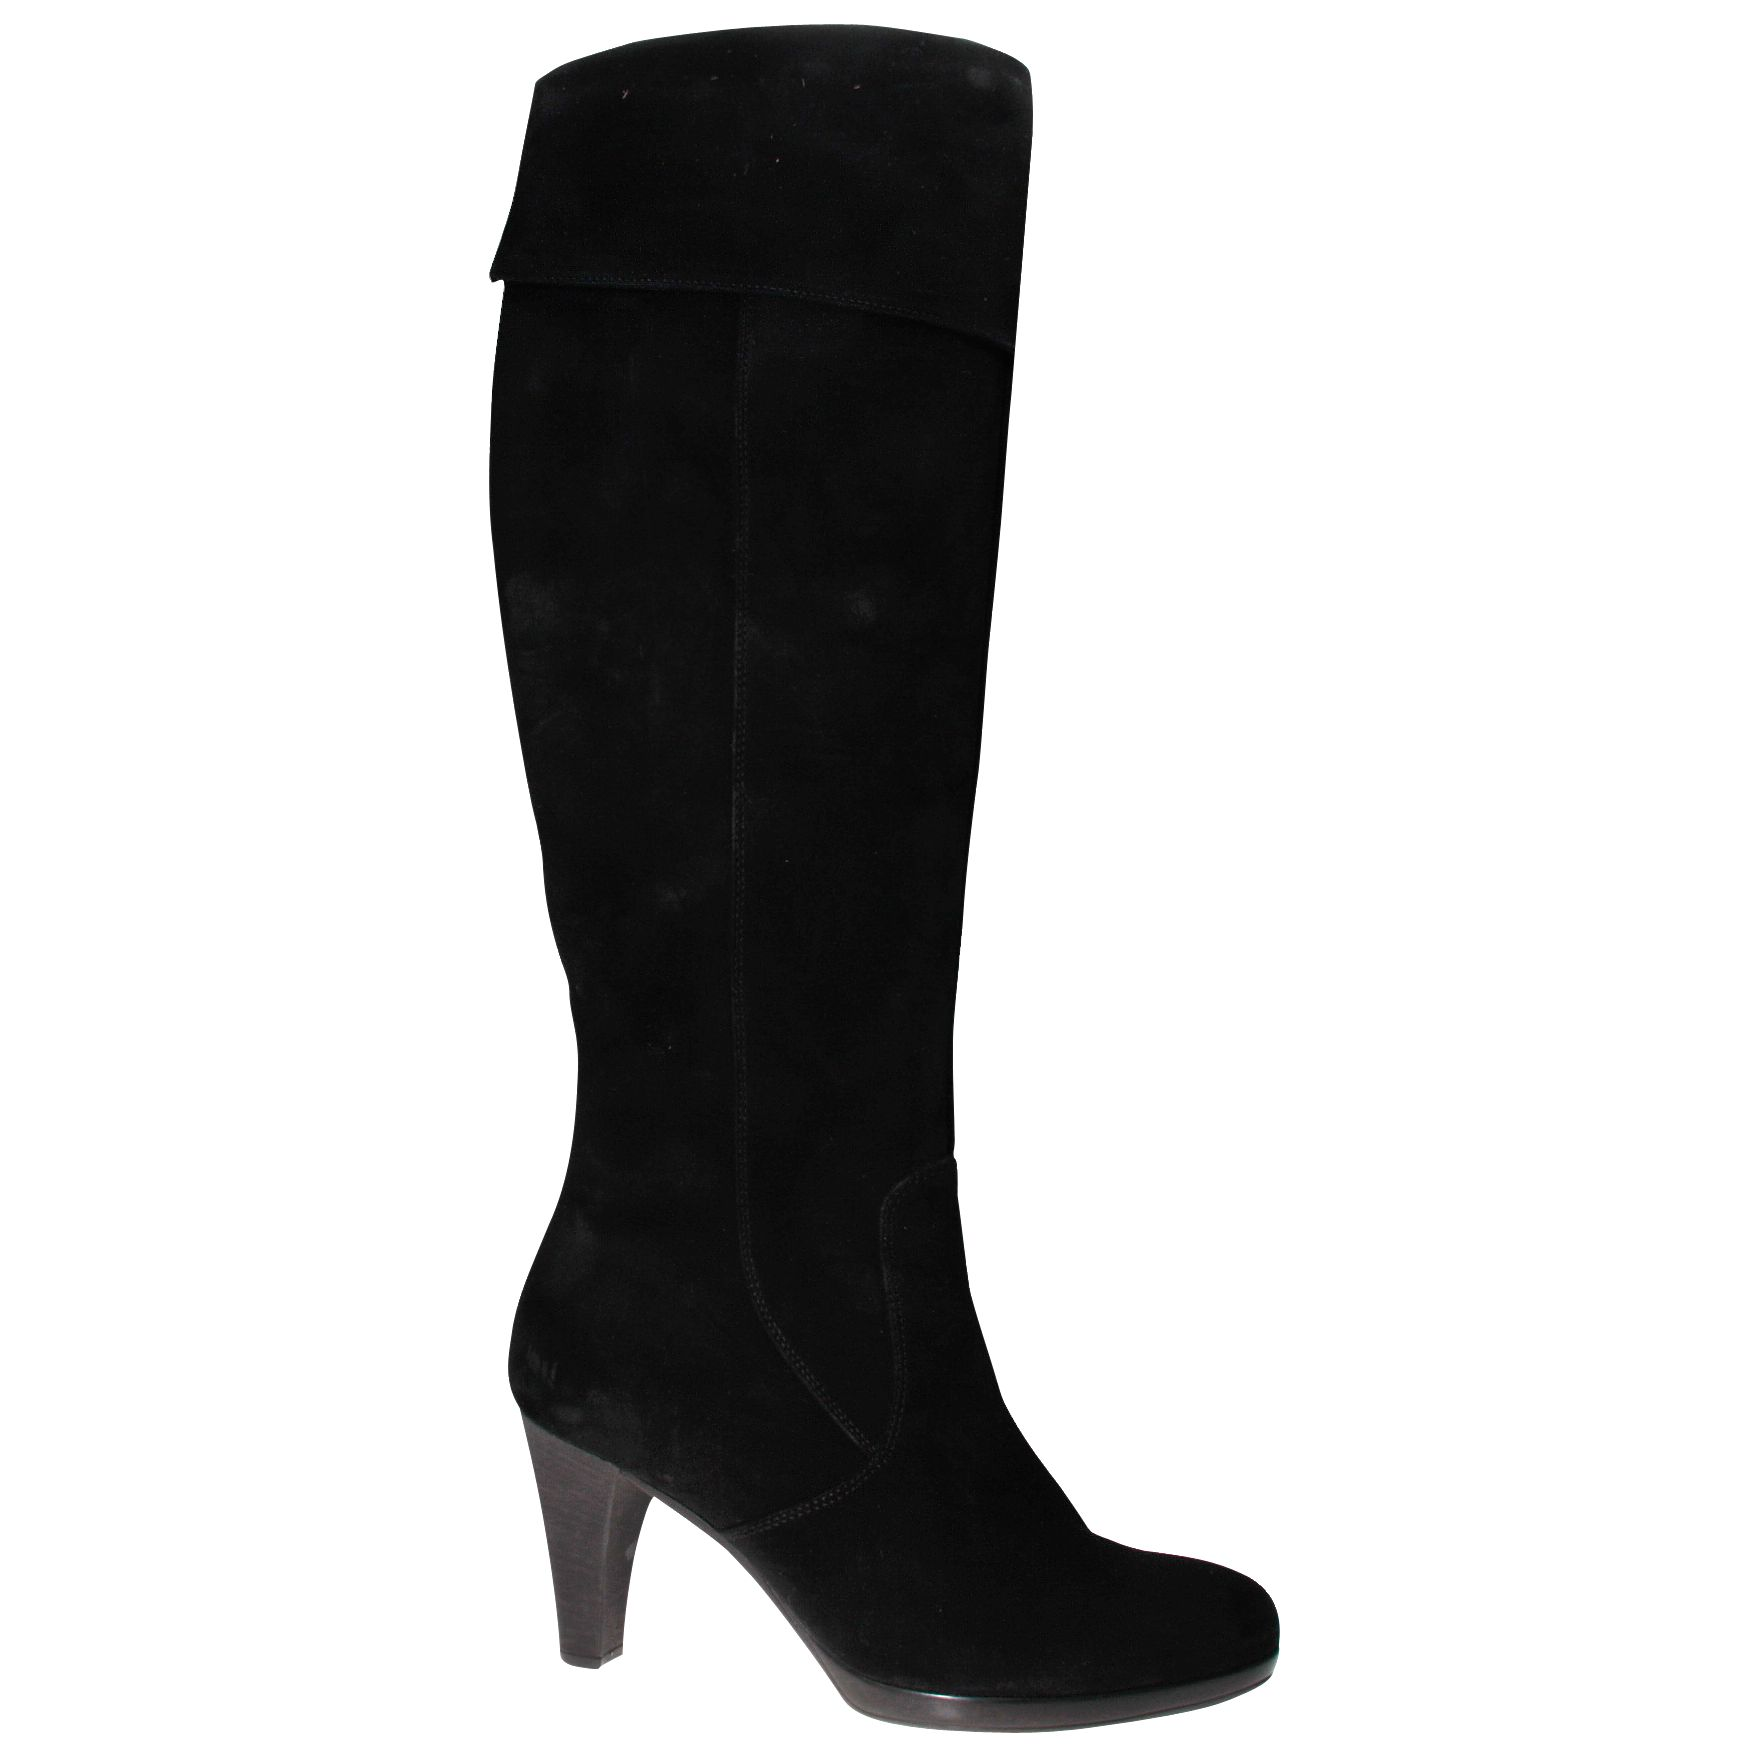 Gabor Gable Over The Knee Boots with Cuff, Black at John Lewis